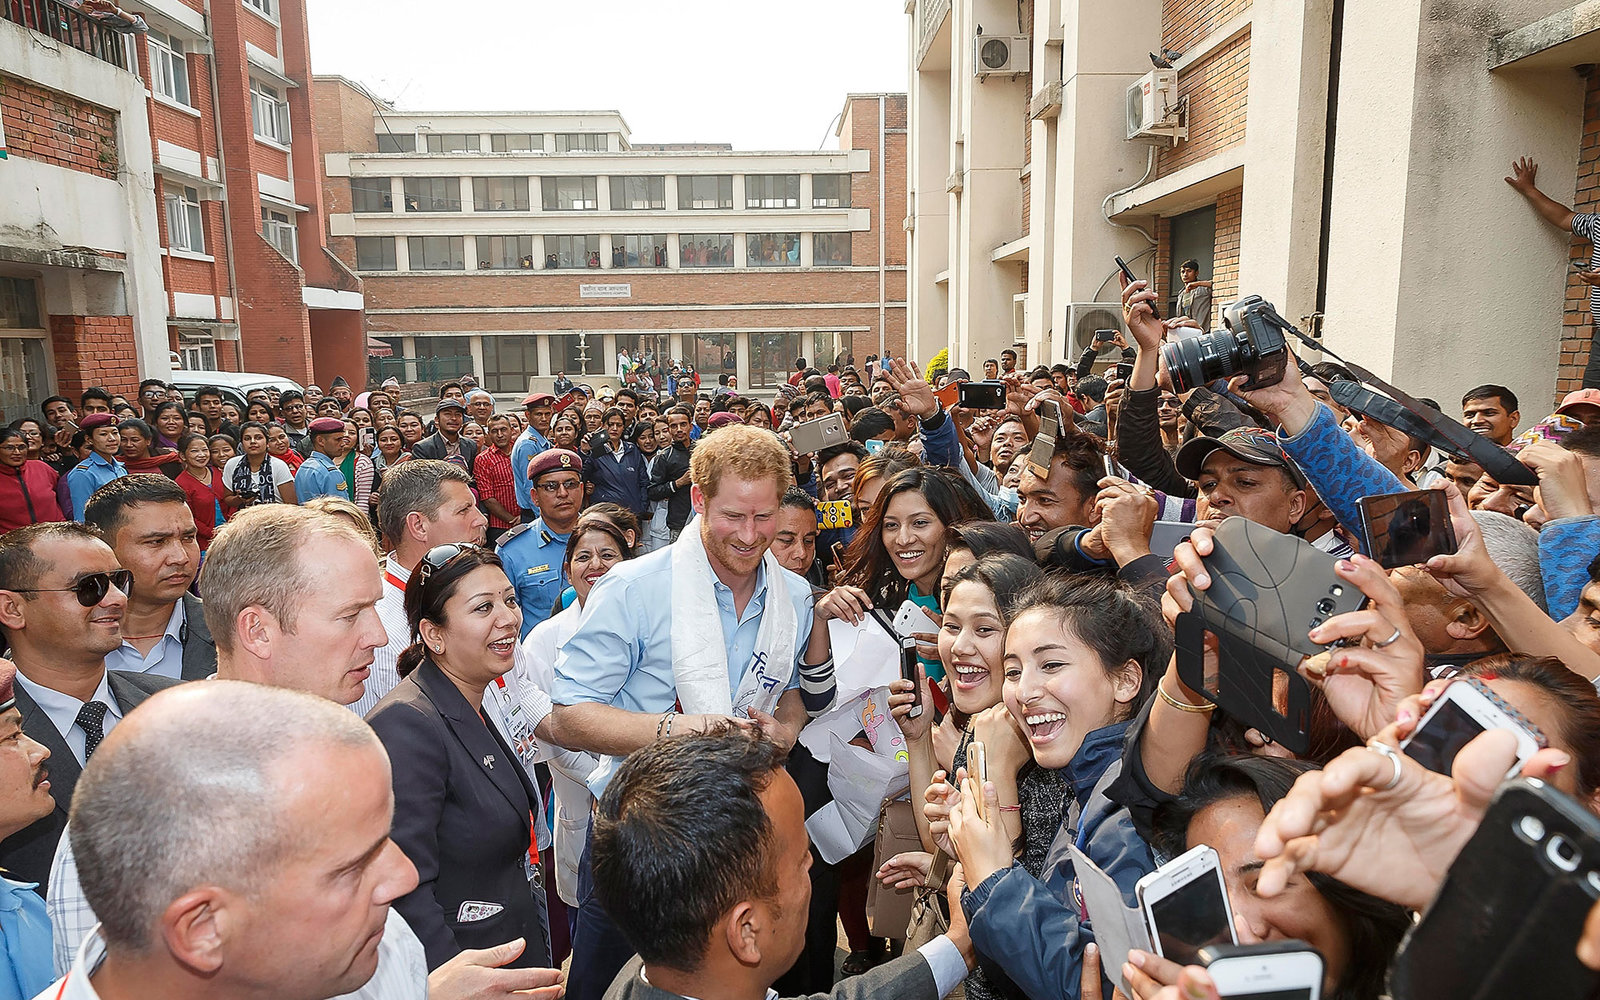 POKHARA, NEPAL - MARCH 23:  Prince Harry is greated by crowds as he visits Kanti Children's Hospital to meet young people being treated with burns on March 23, 2016 in Pokhara, Nepal.  (Photo by Danny Martindale/WireImage)